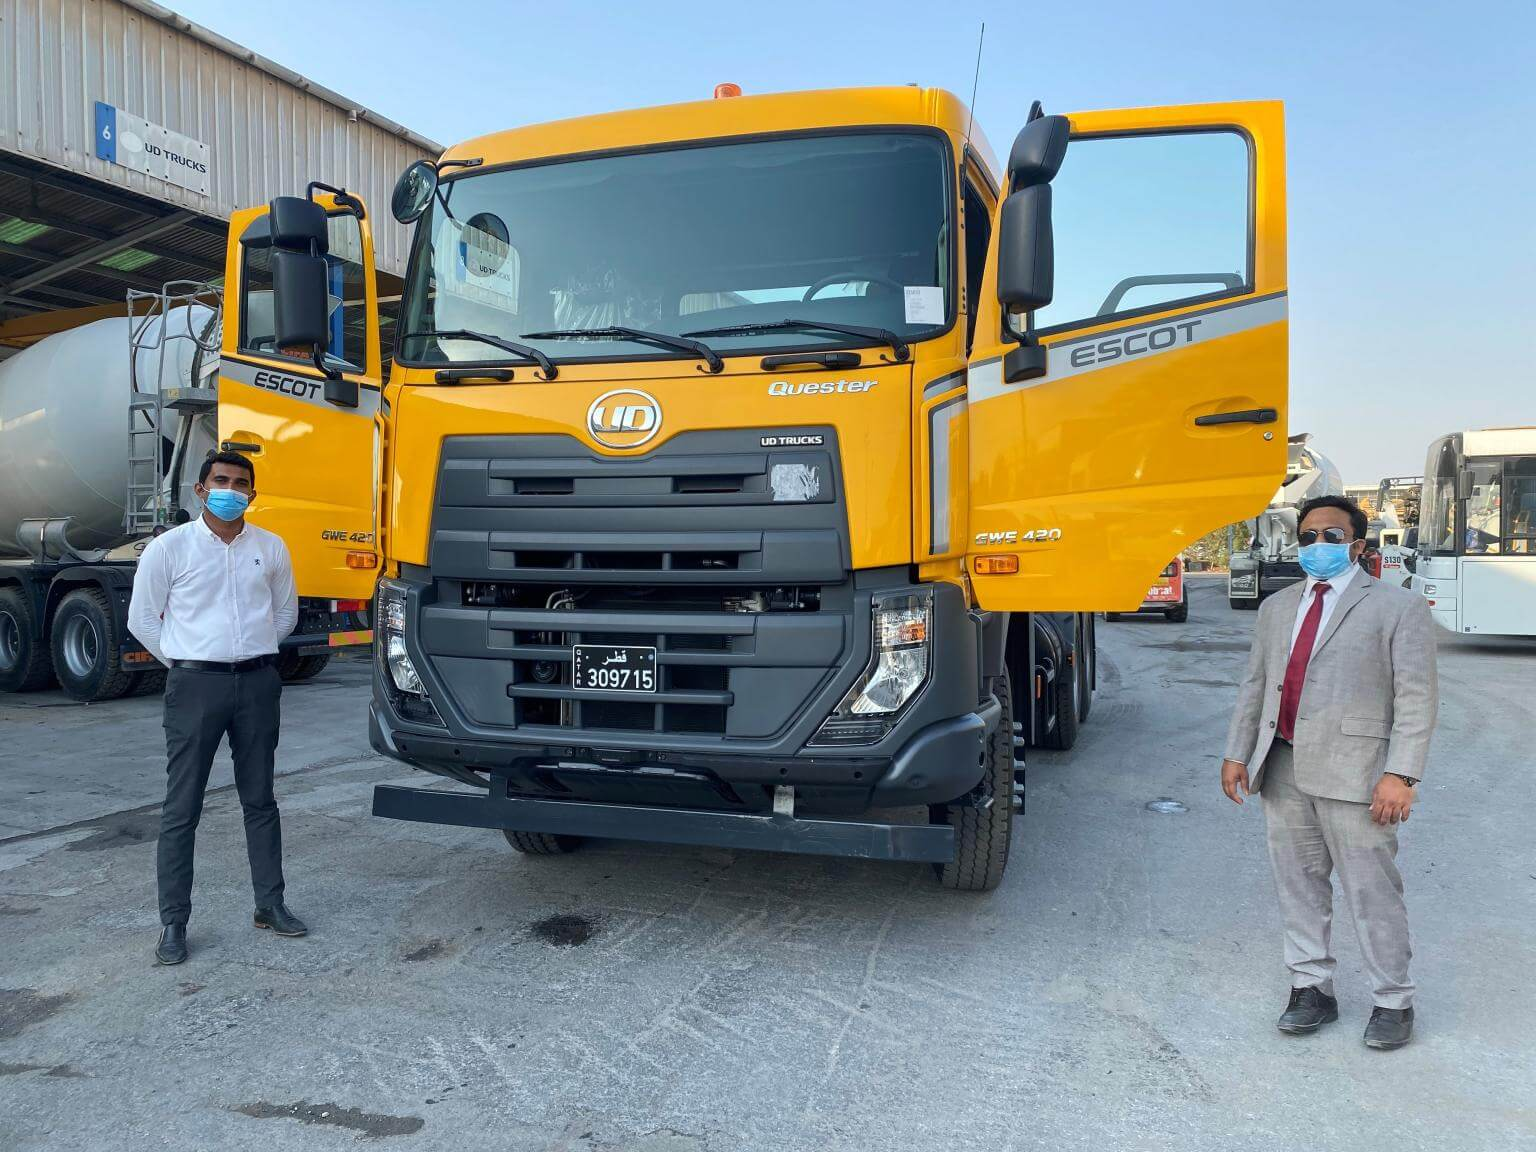 UD Truck's New Quester with ESCOT automatic transmission delivered to a leadi...<